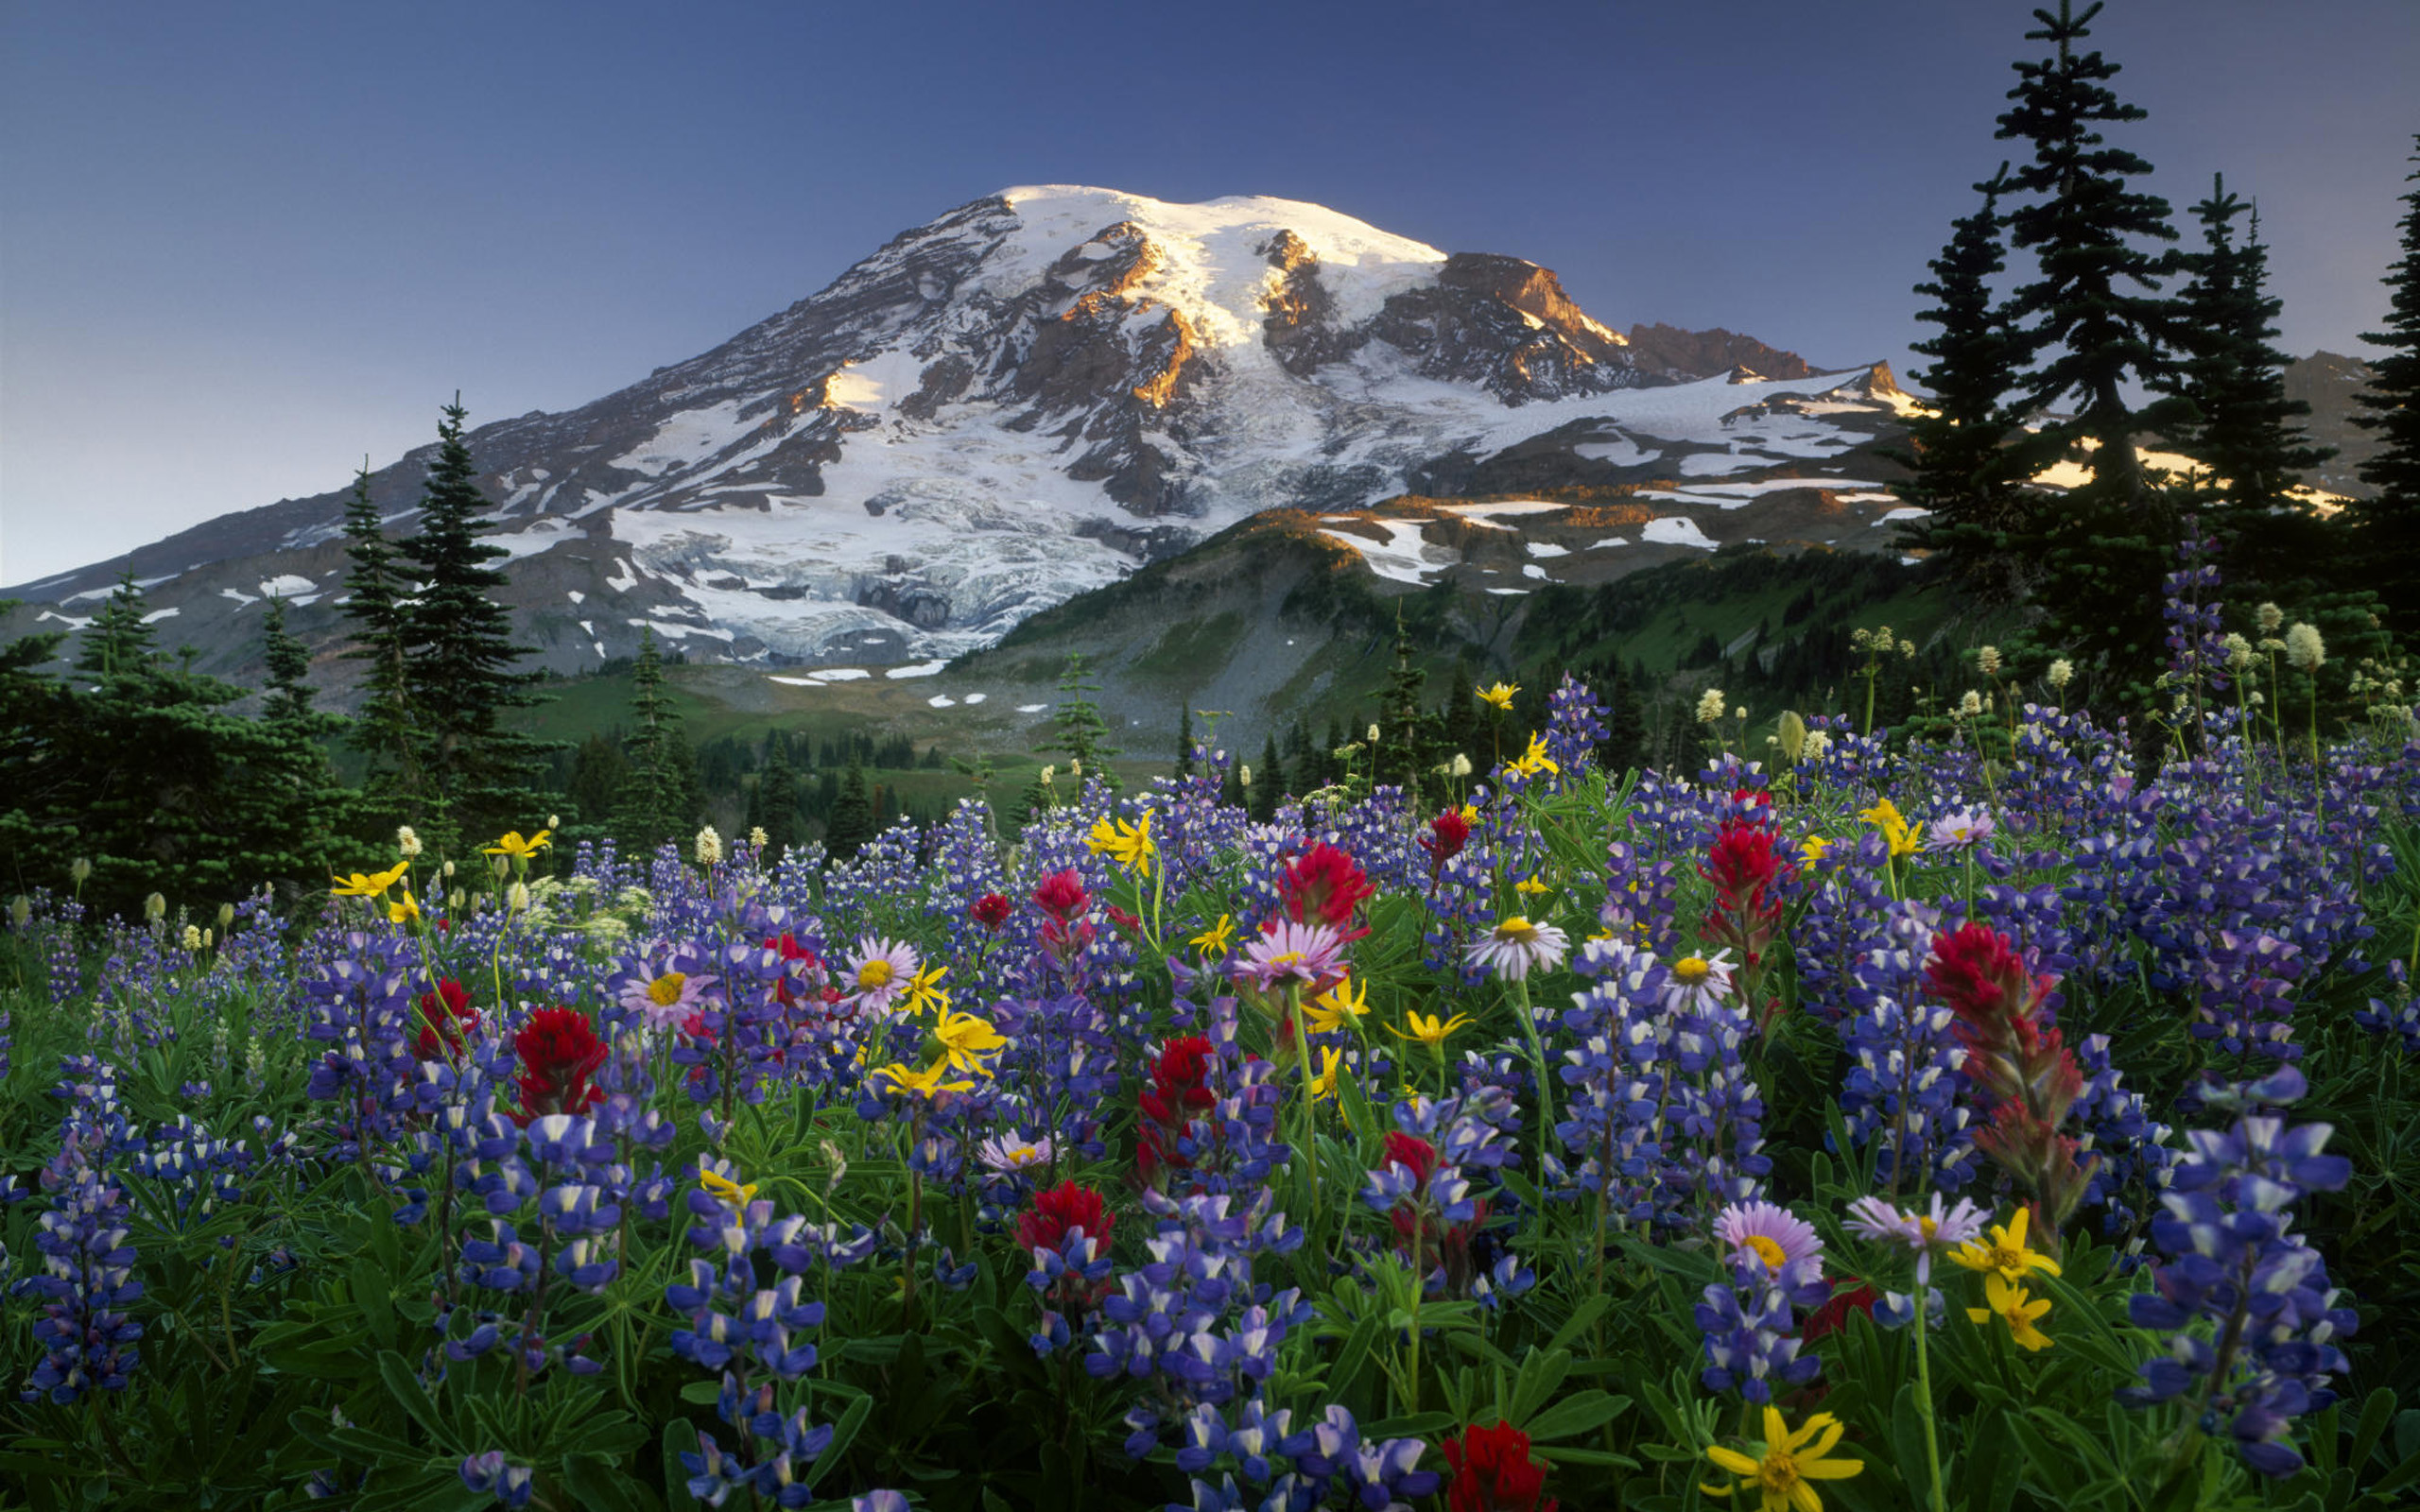 2560x1600 Mountains Wallpaper Free Download · Mountains Wallpapers | Best ... Mount  RainierWild ...